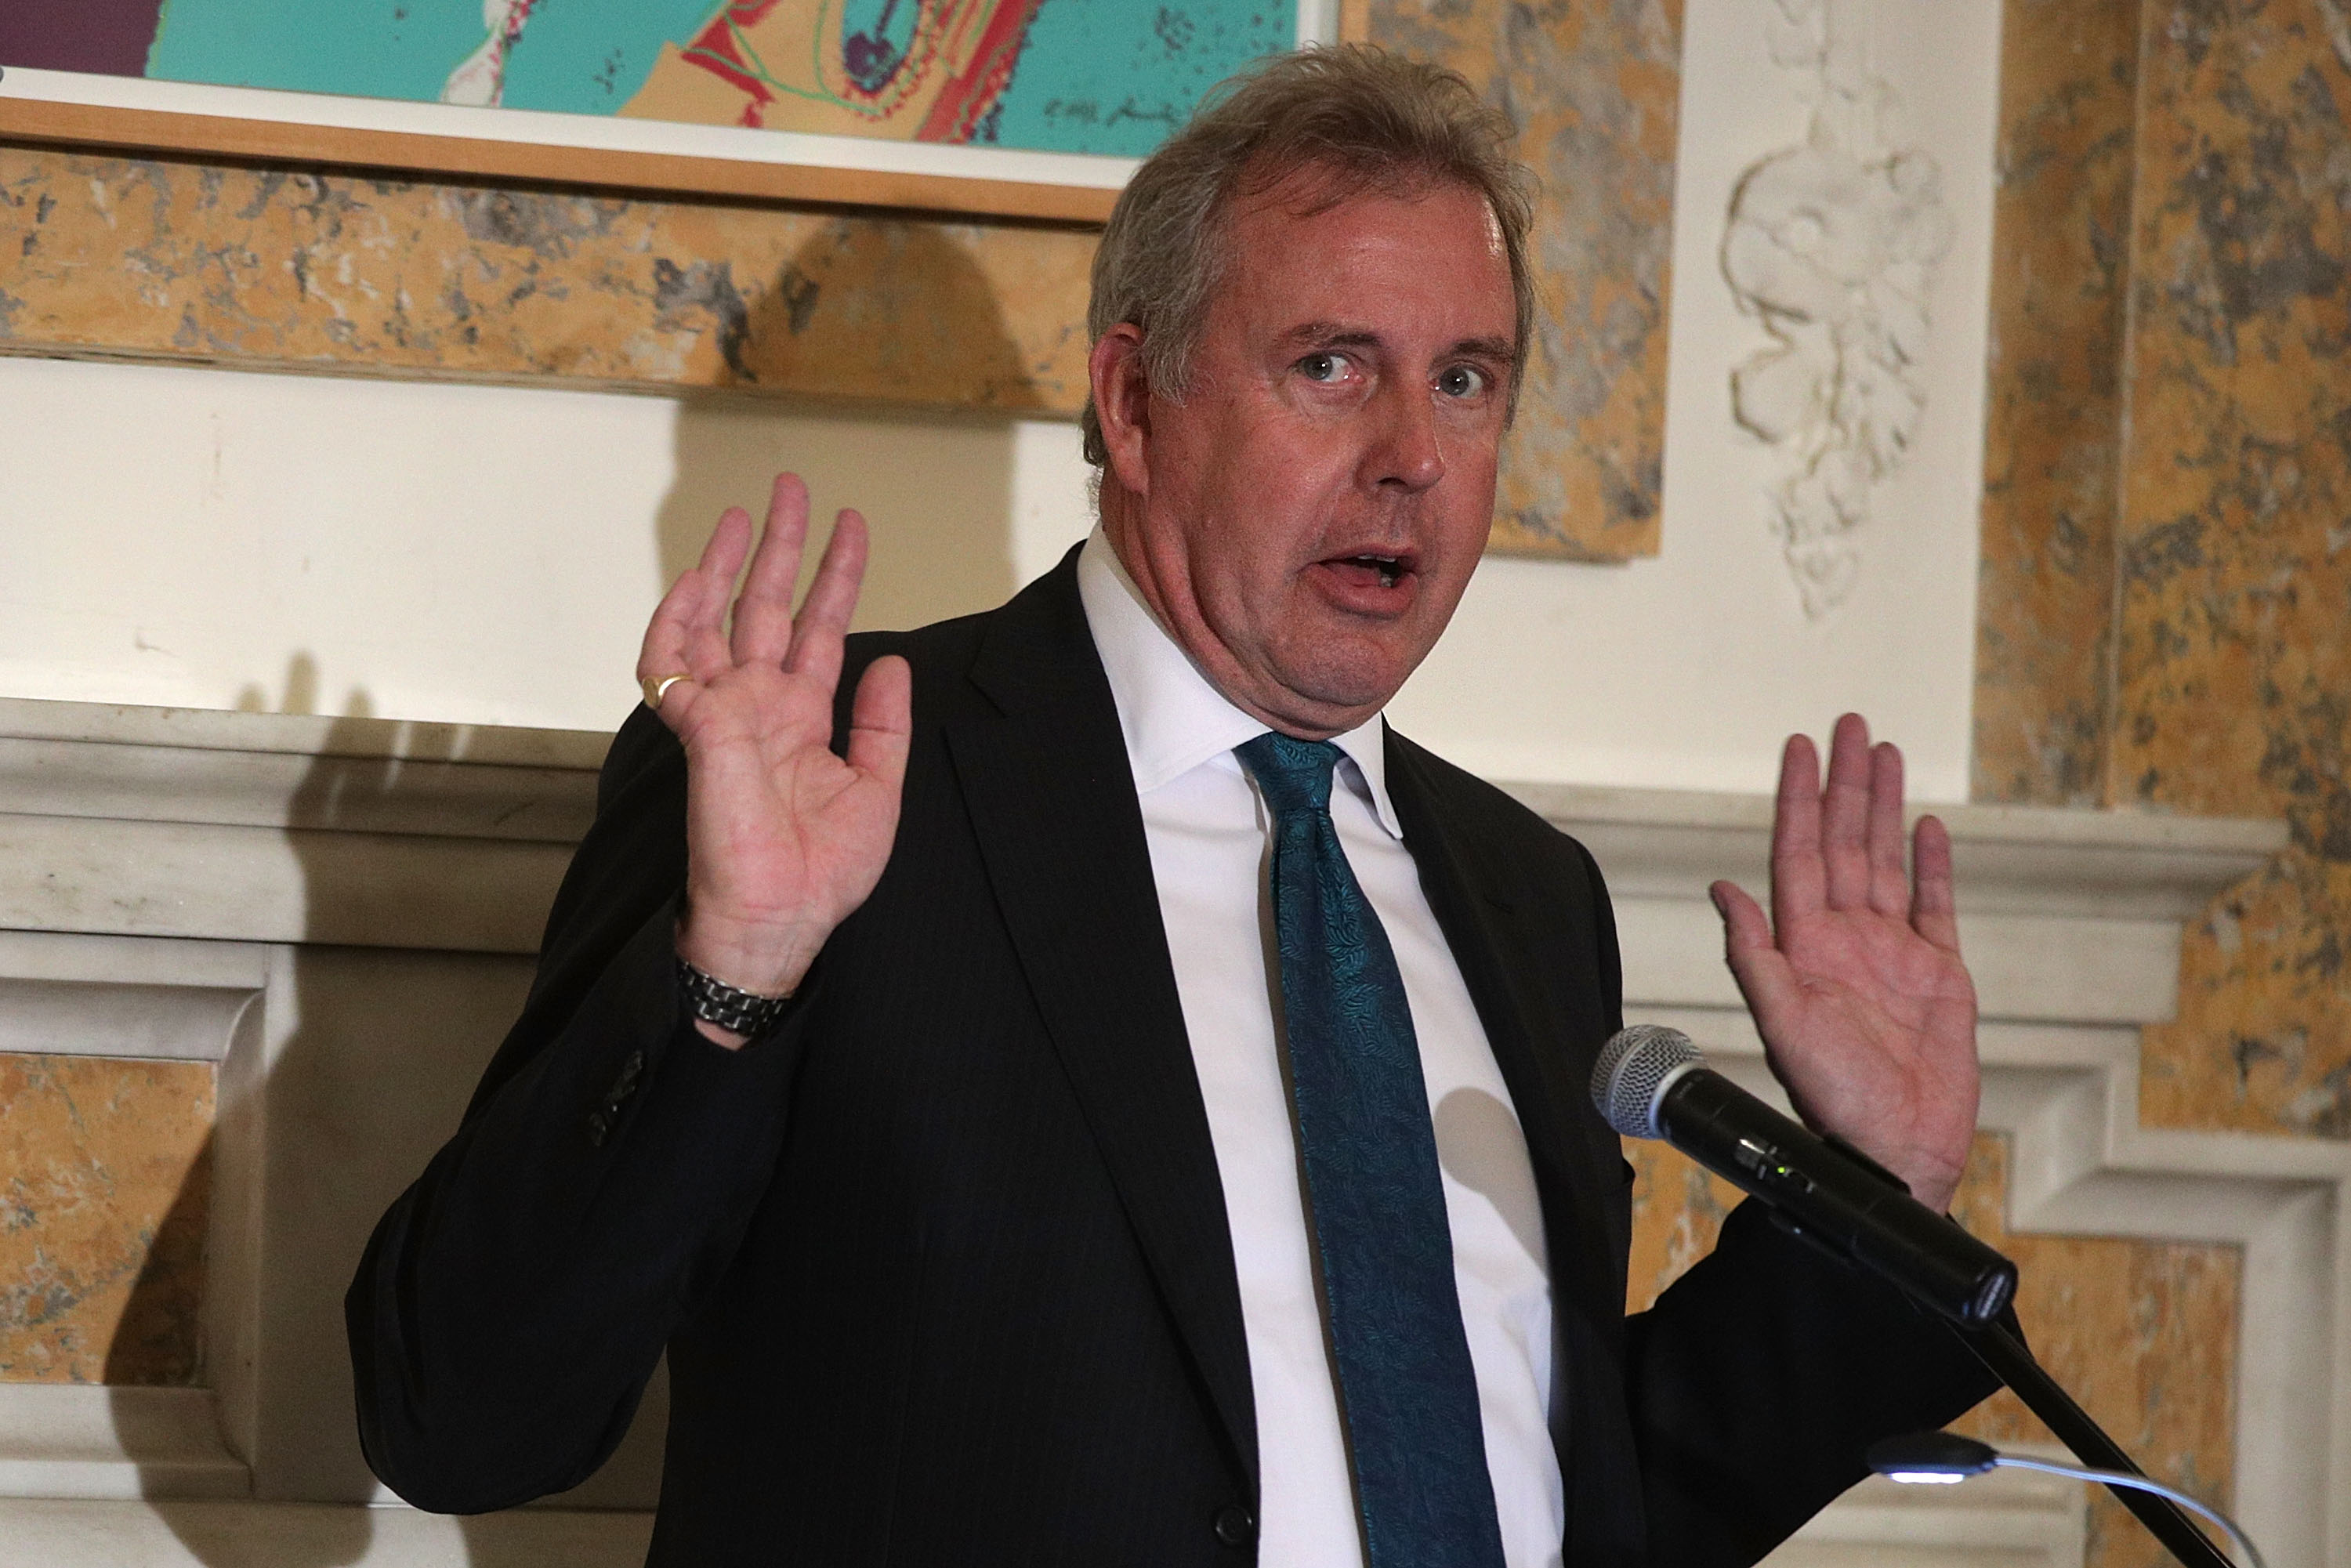 UK Ambassador to the UK Kim Darroch standing in front of a microphone and holding up his hands.